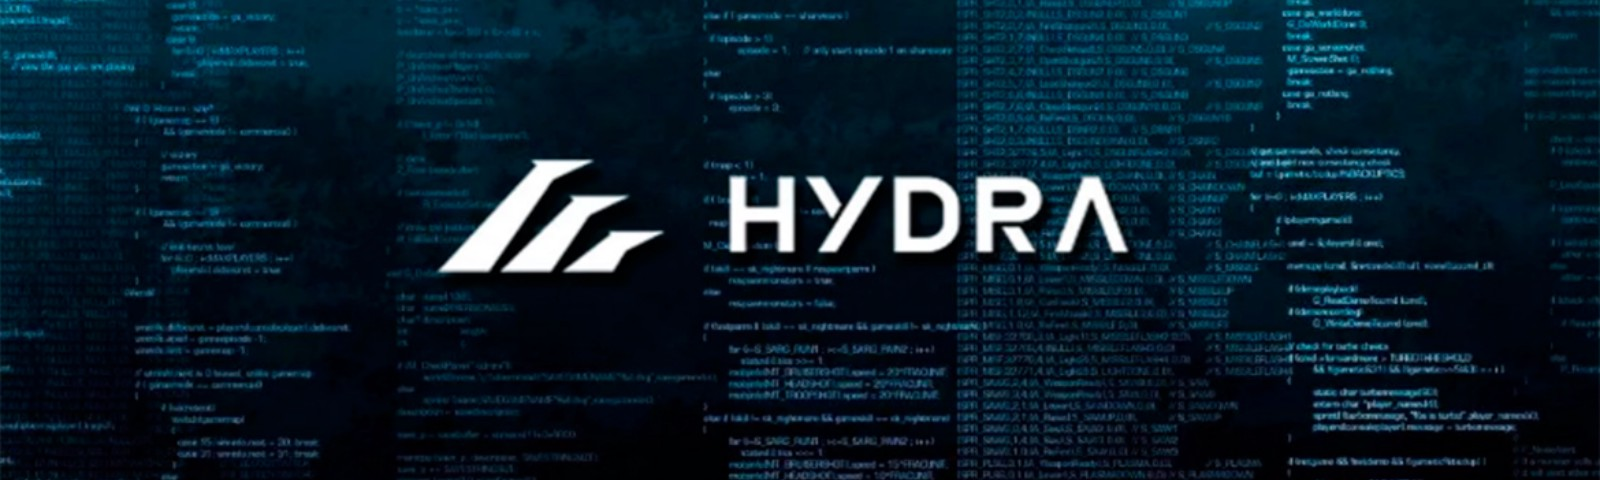 darknet grams hydra